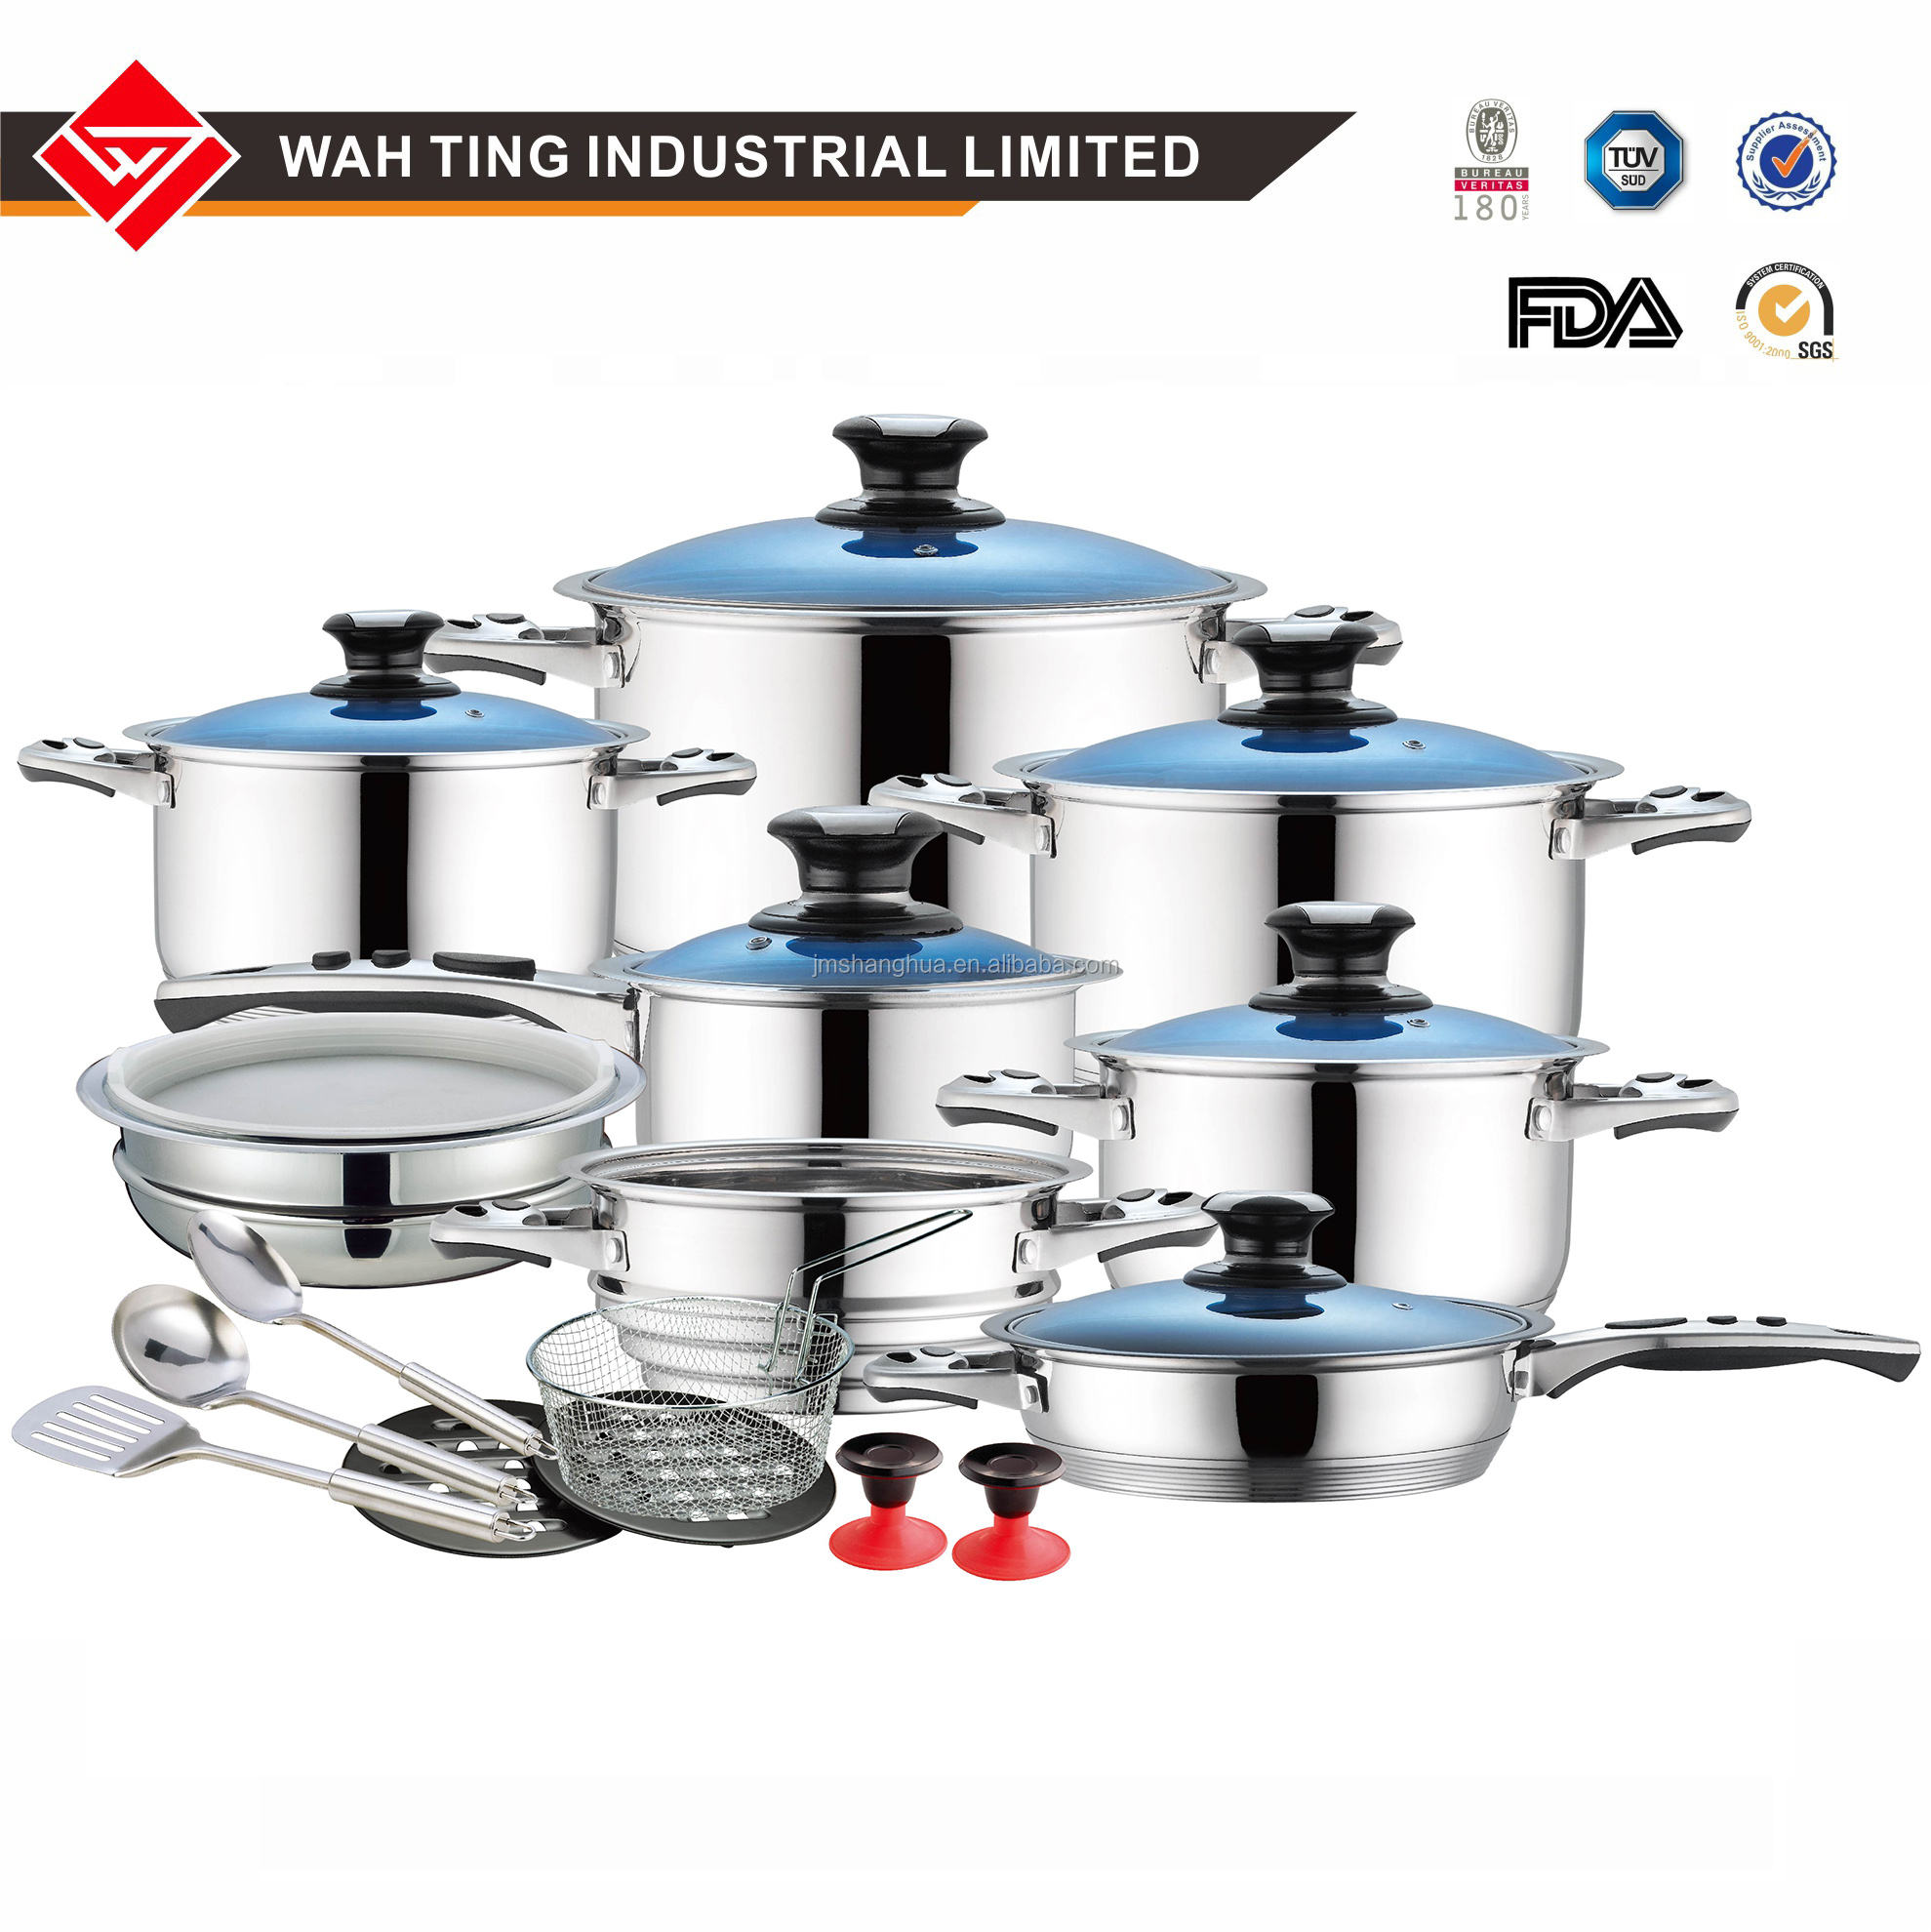 new item-23Pcs- Germany Standard -S/S-stock Pot- 9 OR 11 layer bottom cookware Set with elegant Blue color Glass Cover